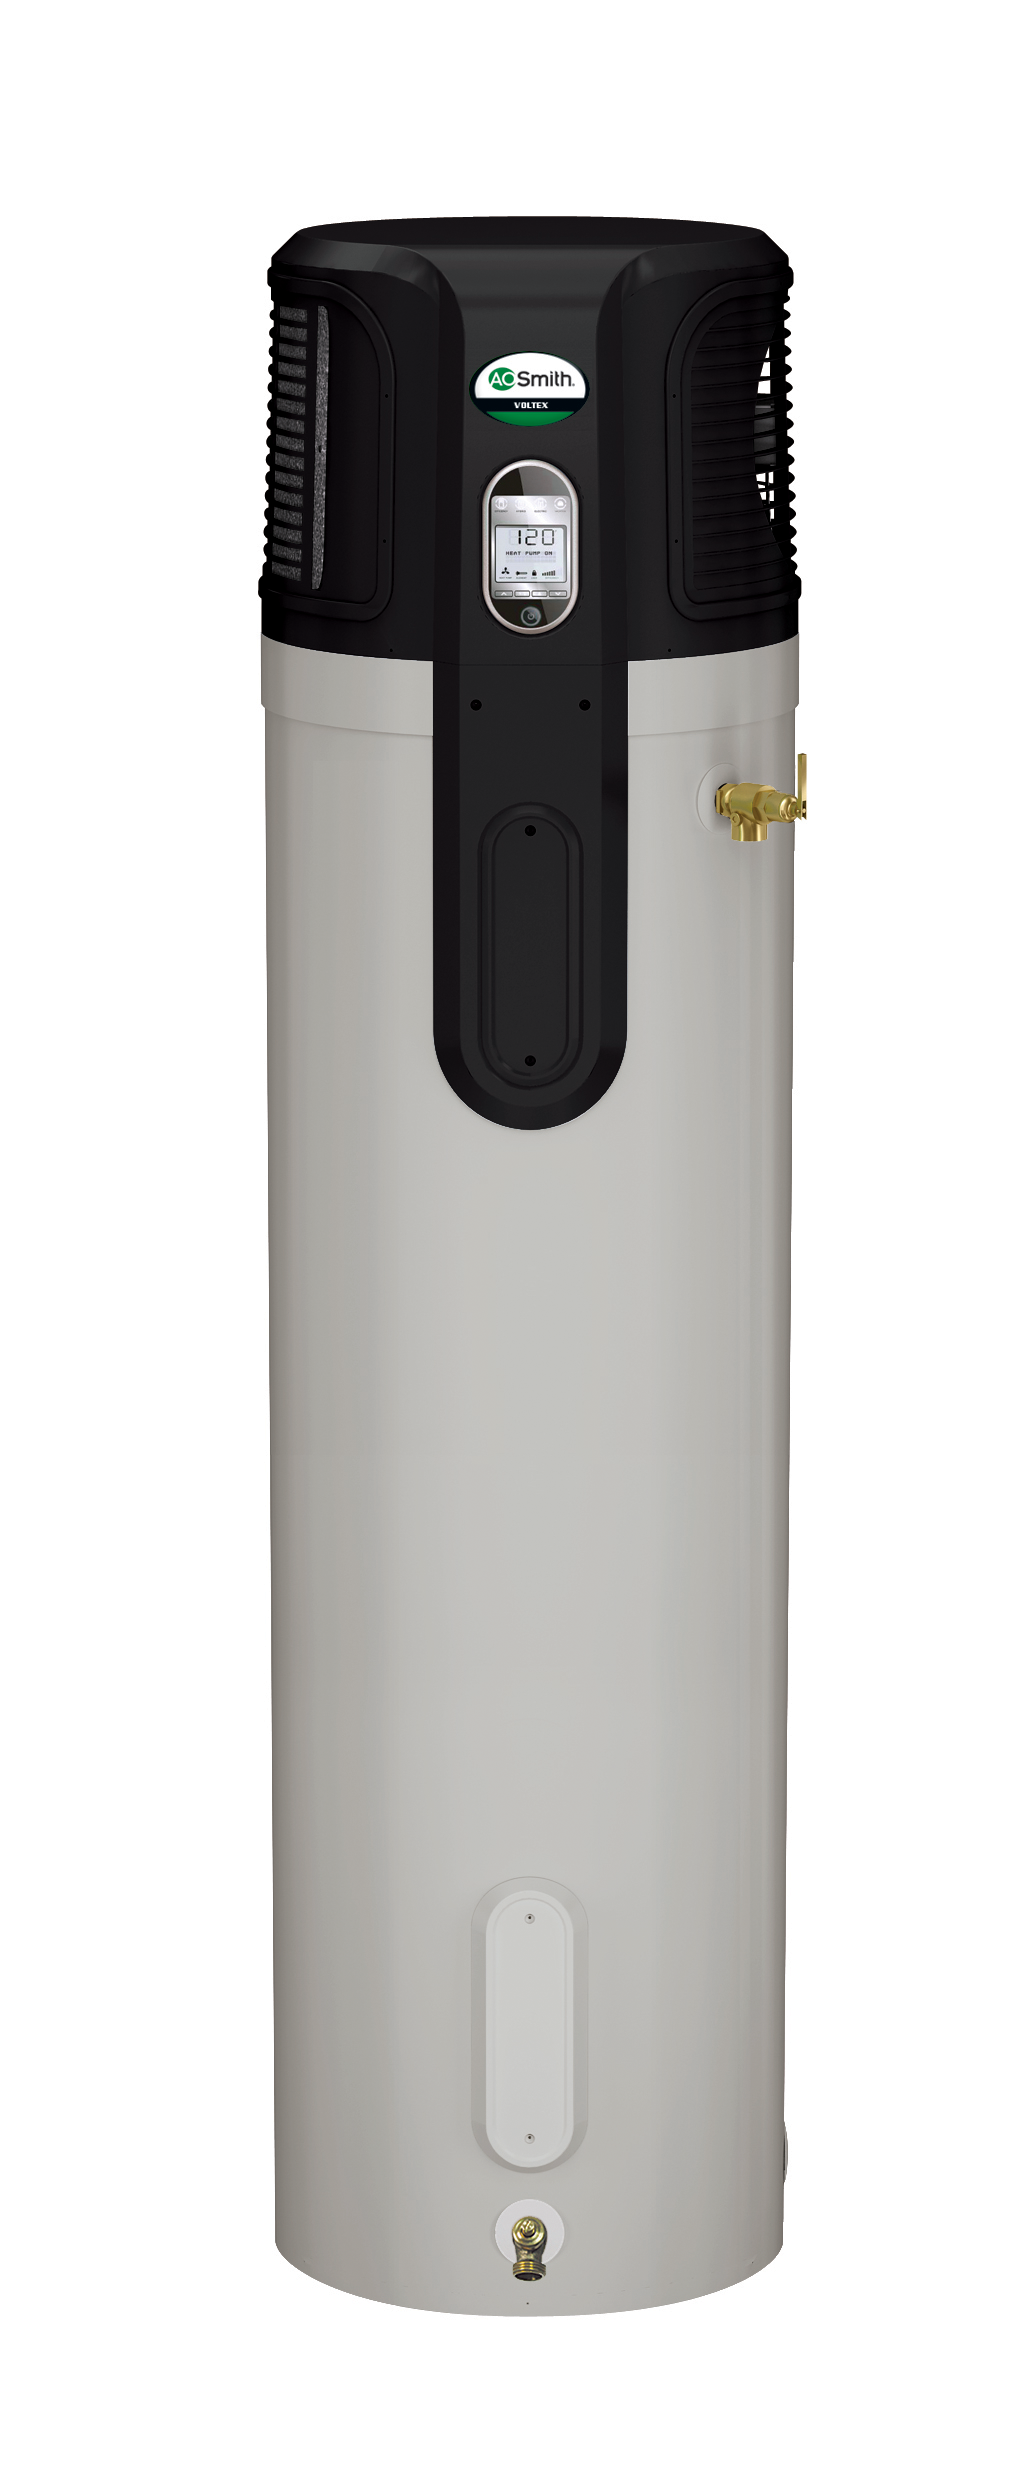 How Does A Heat Pump Water Heater Save 393 Annually